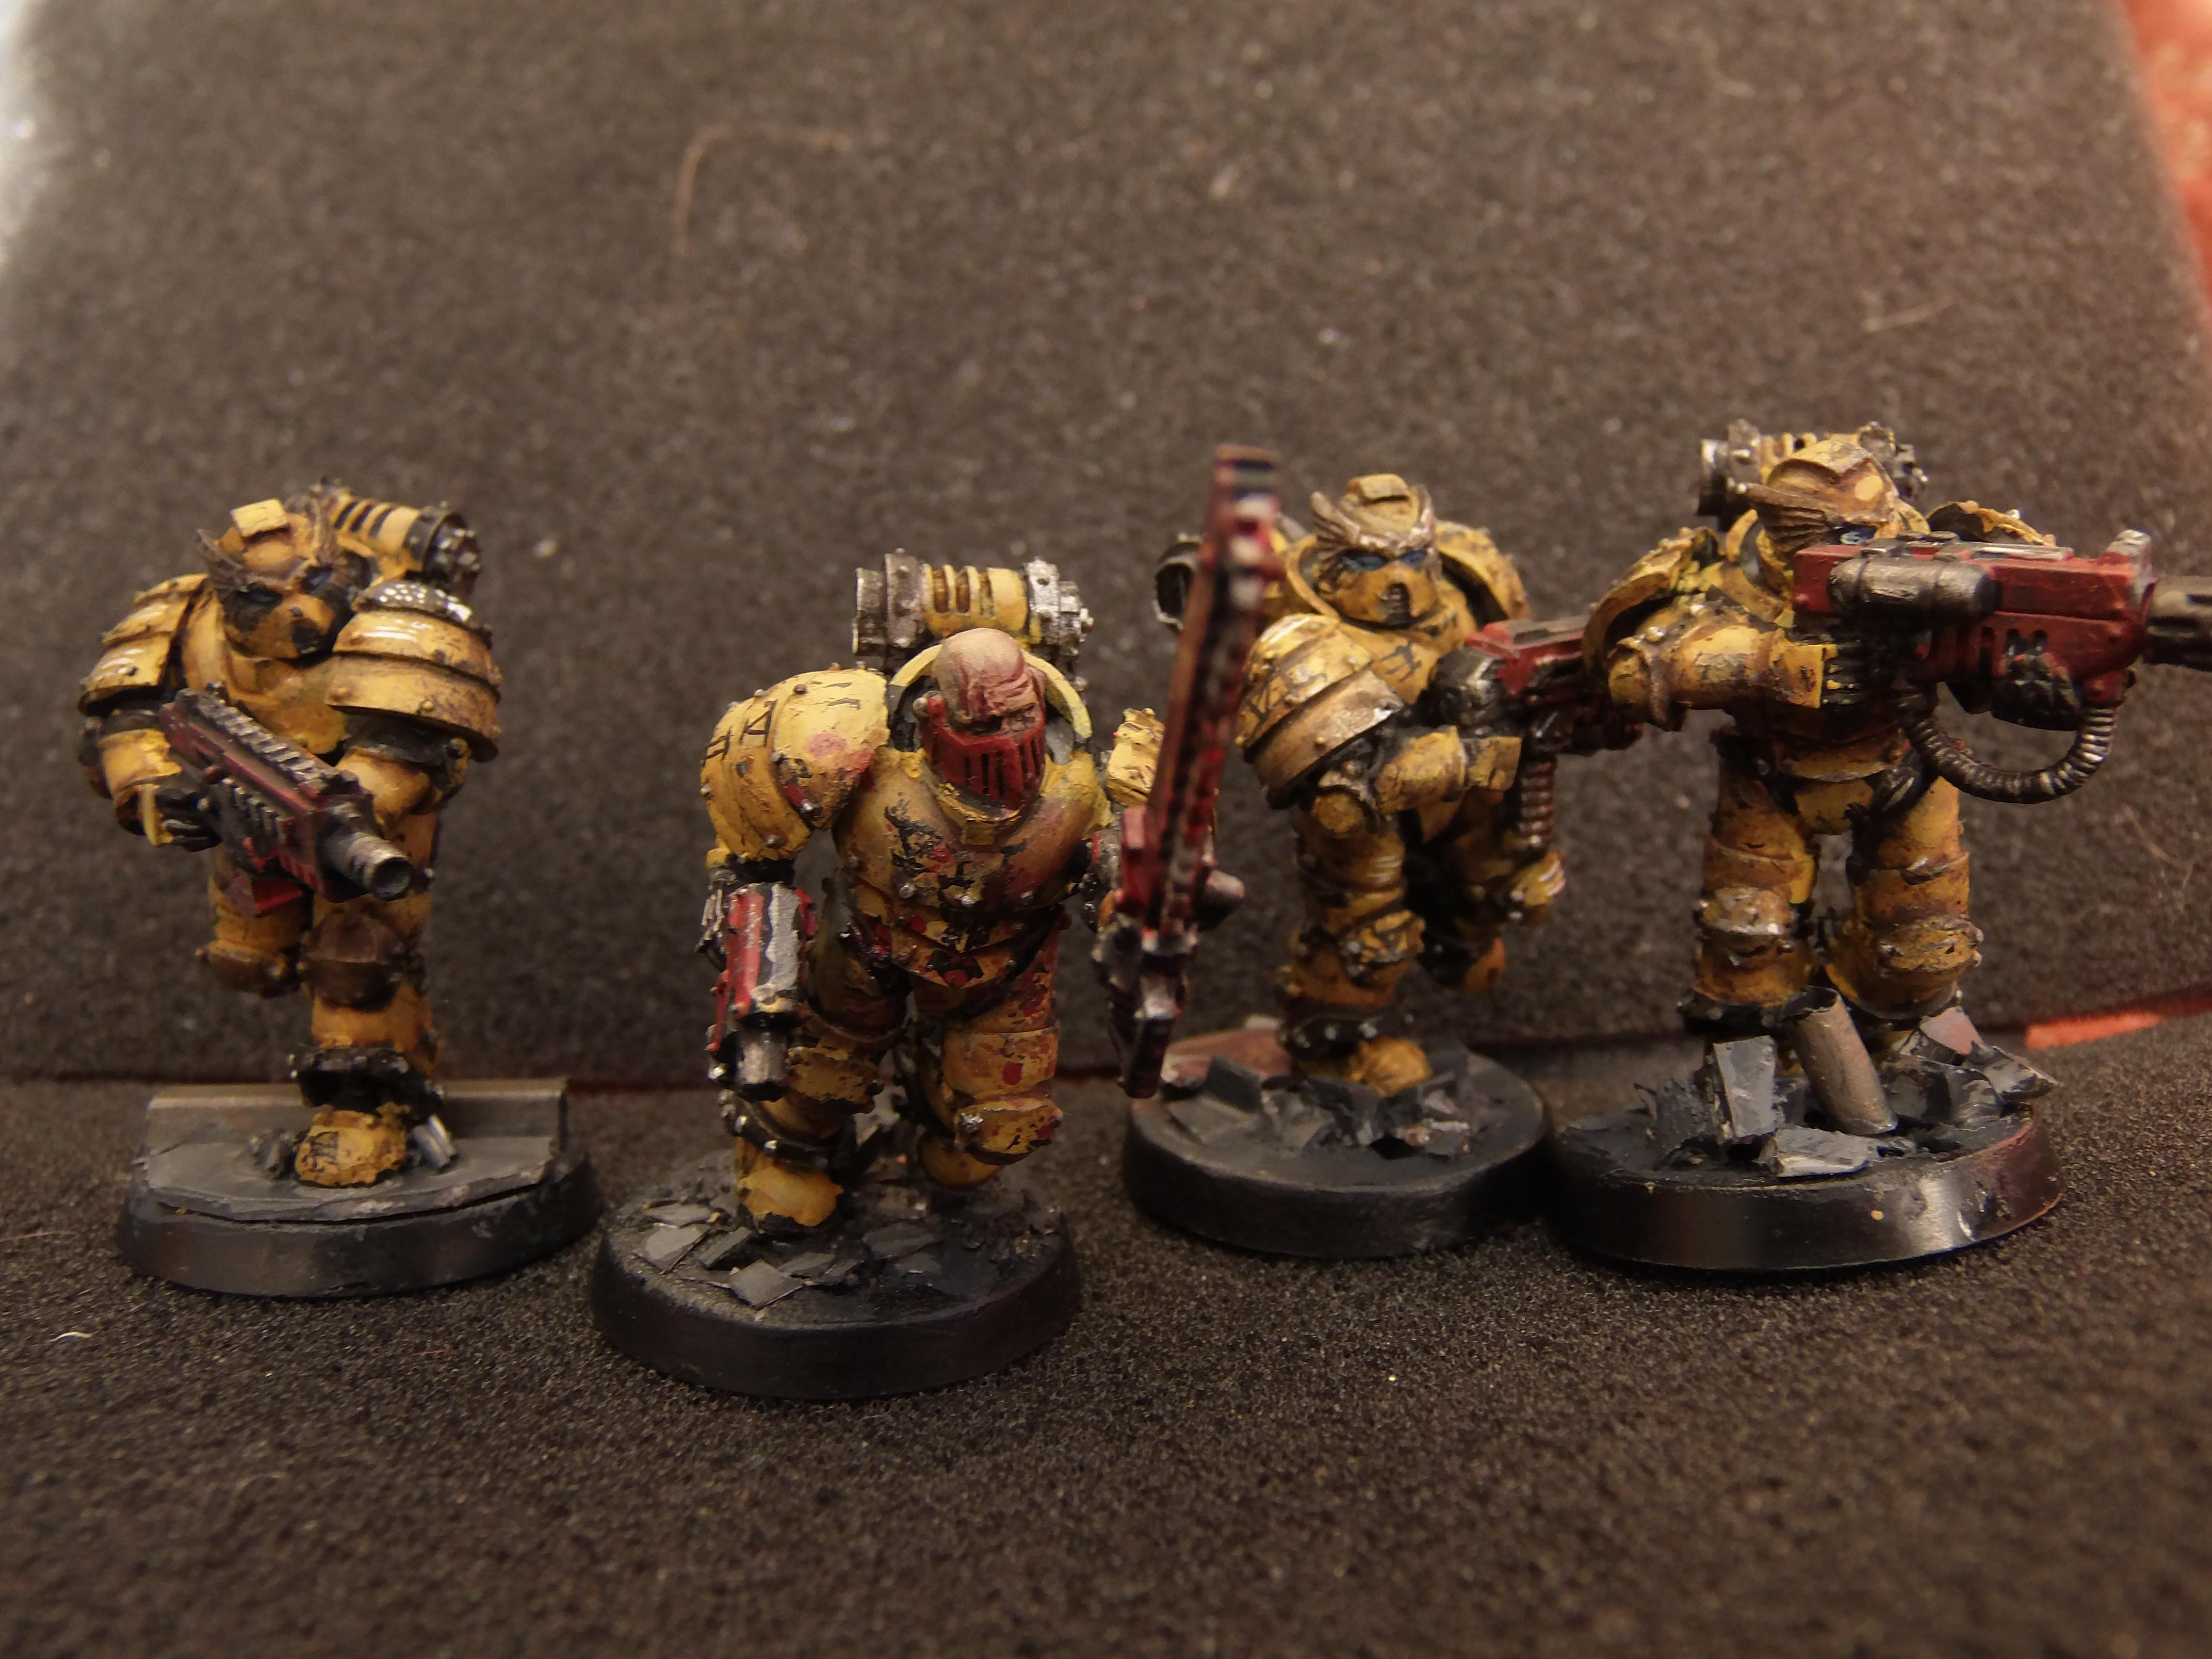 Anvil, First Company, Horus Heresy, Imperial Fists, Space Marines, Veteran, Warhammer 40,000